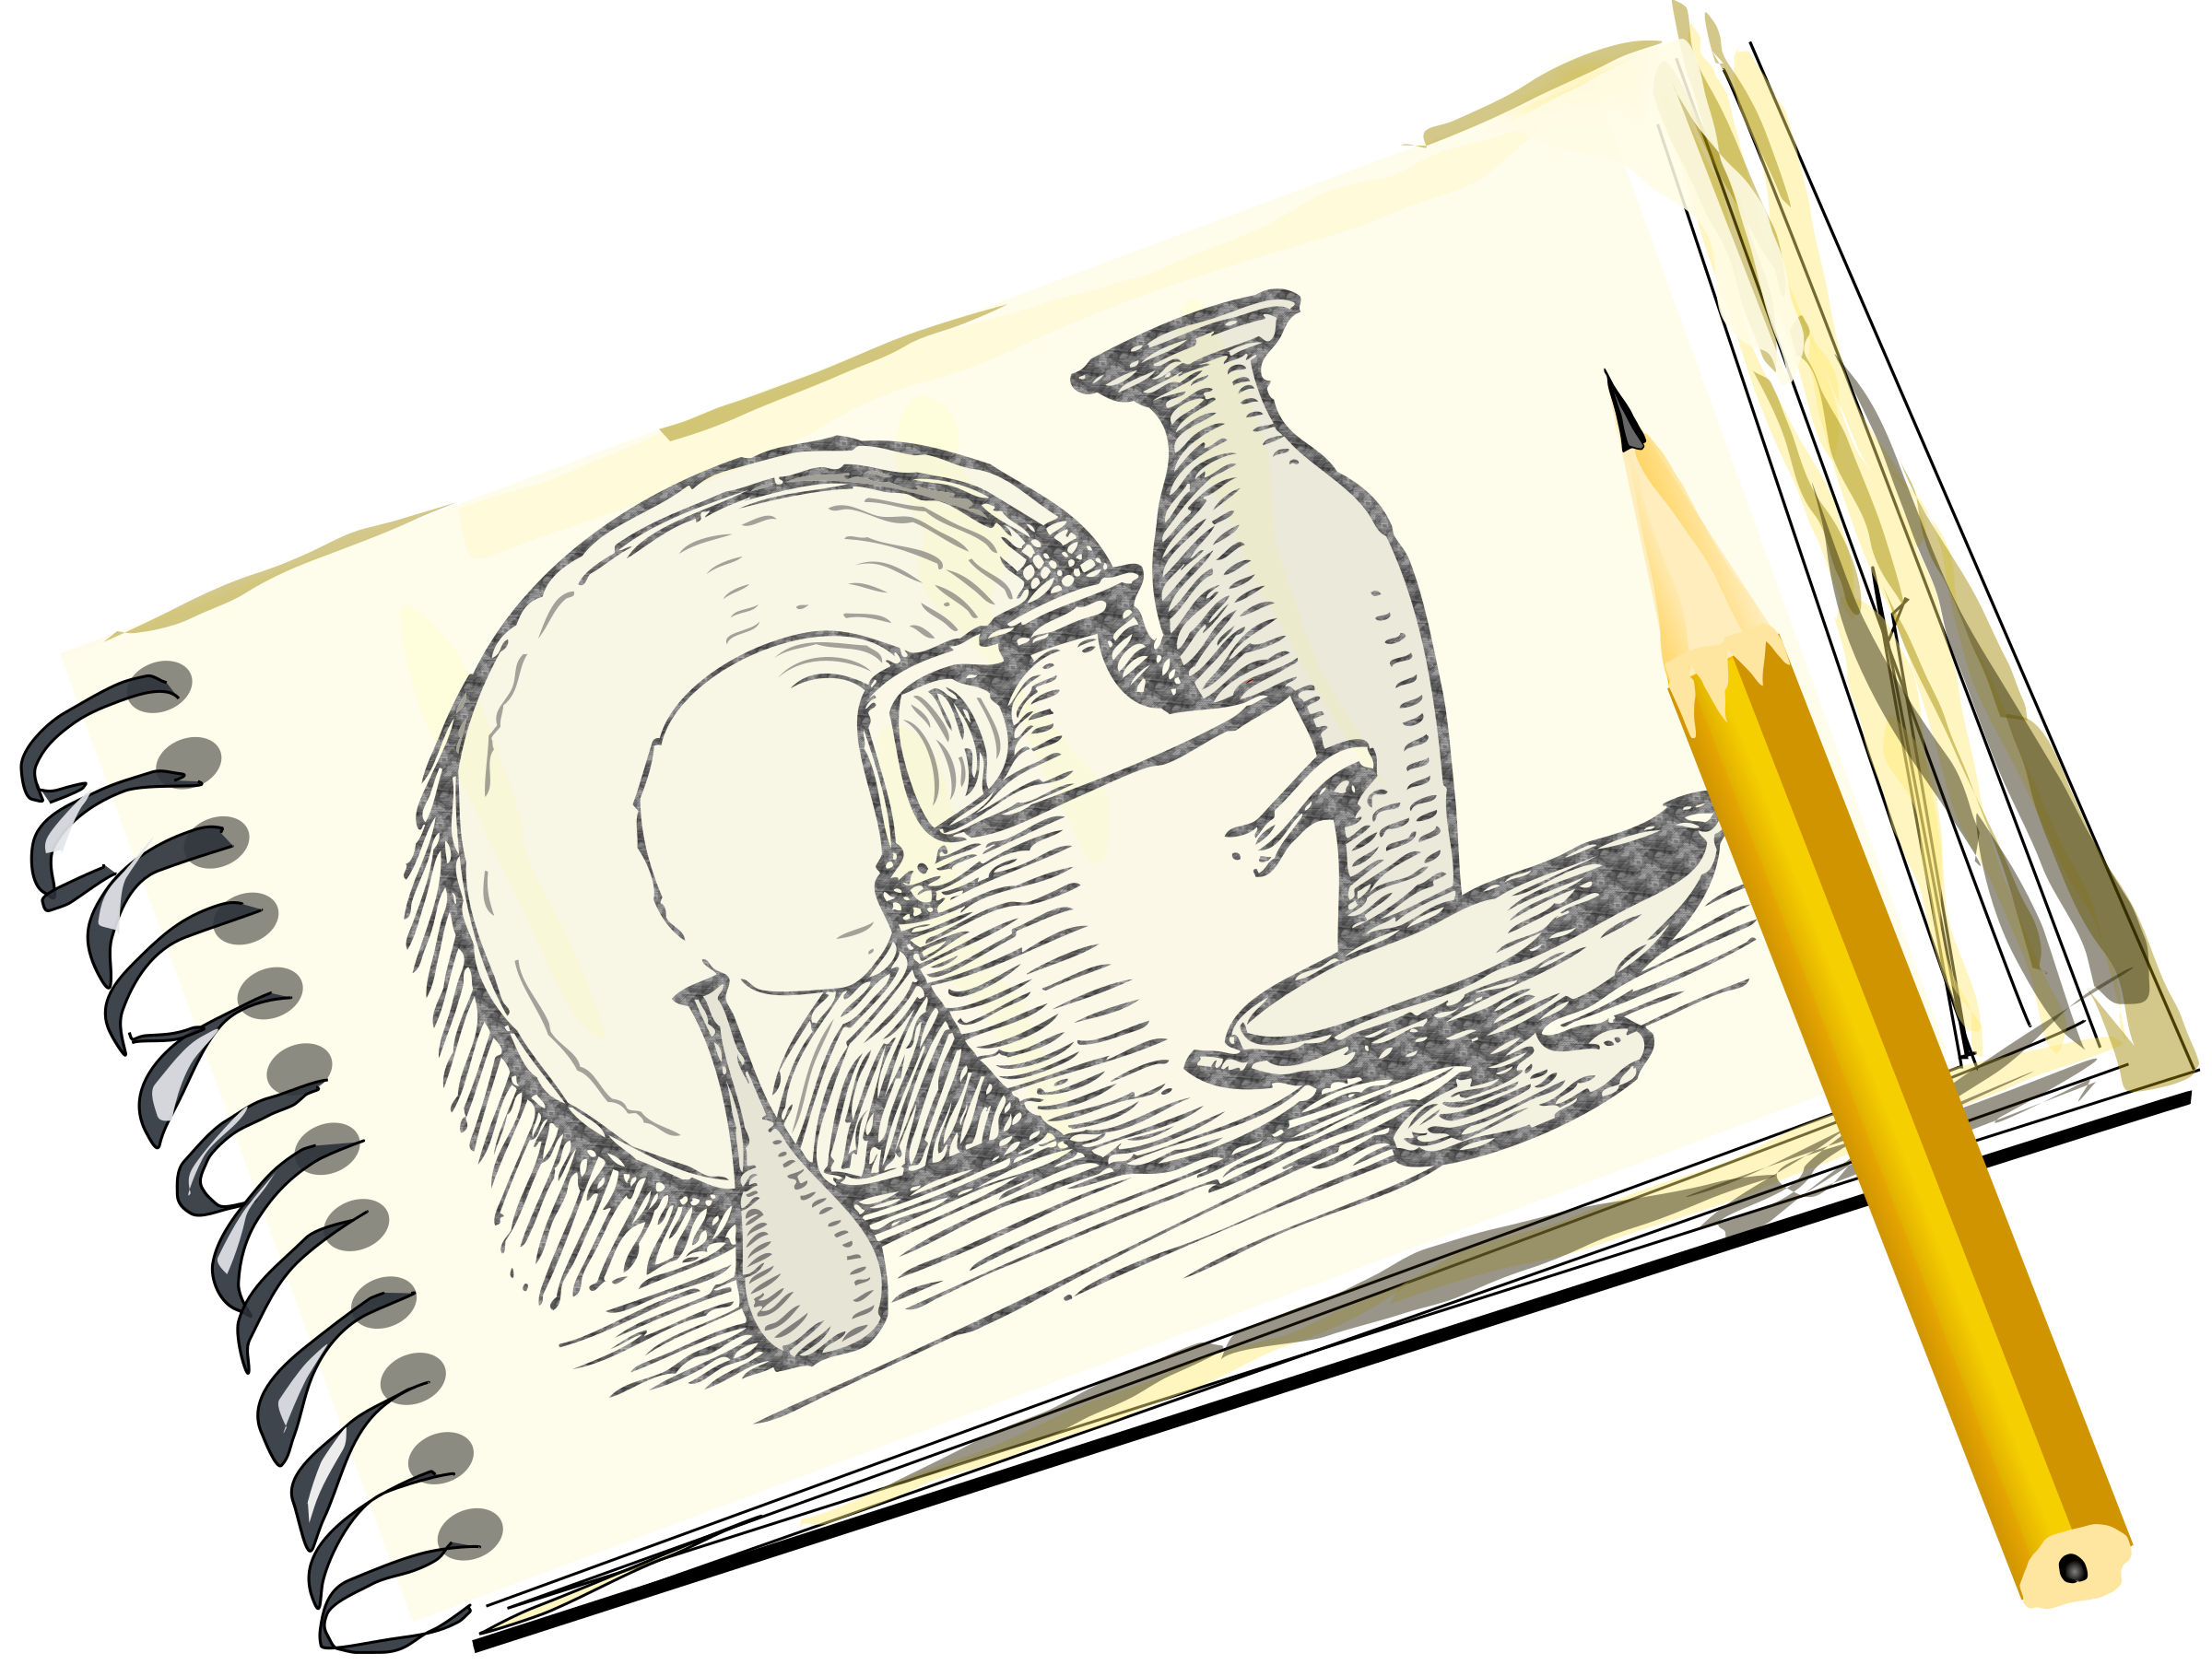 Sketchpad with Still Life, Unfilled by eady